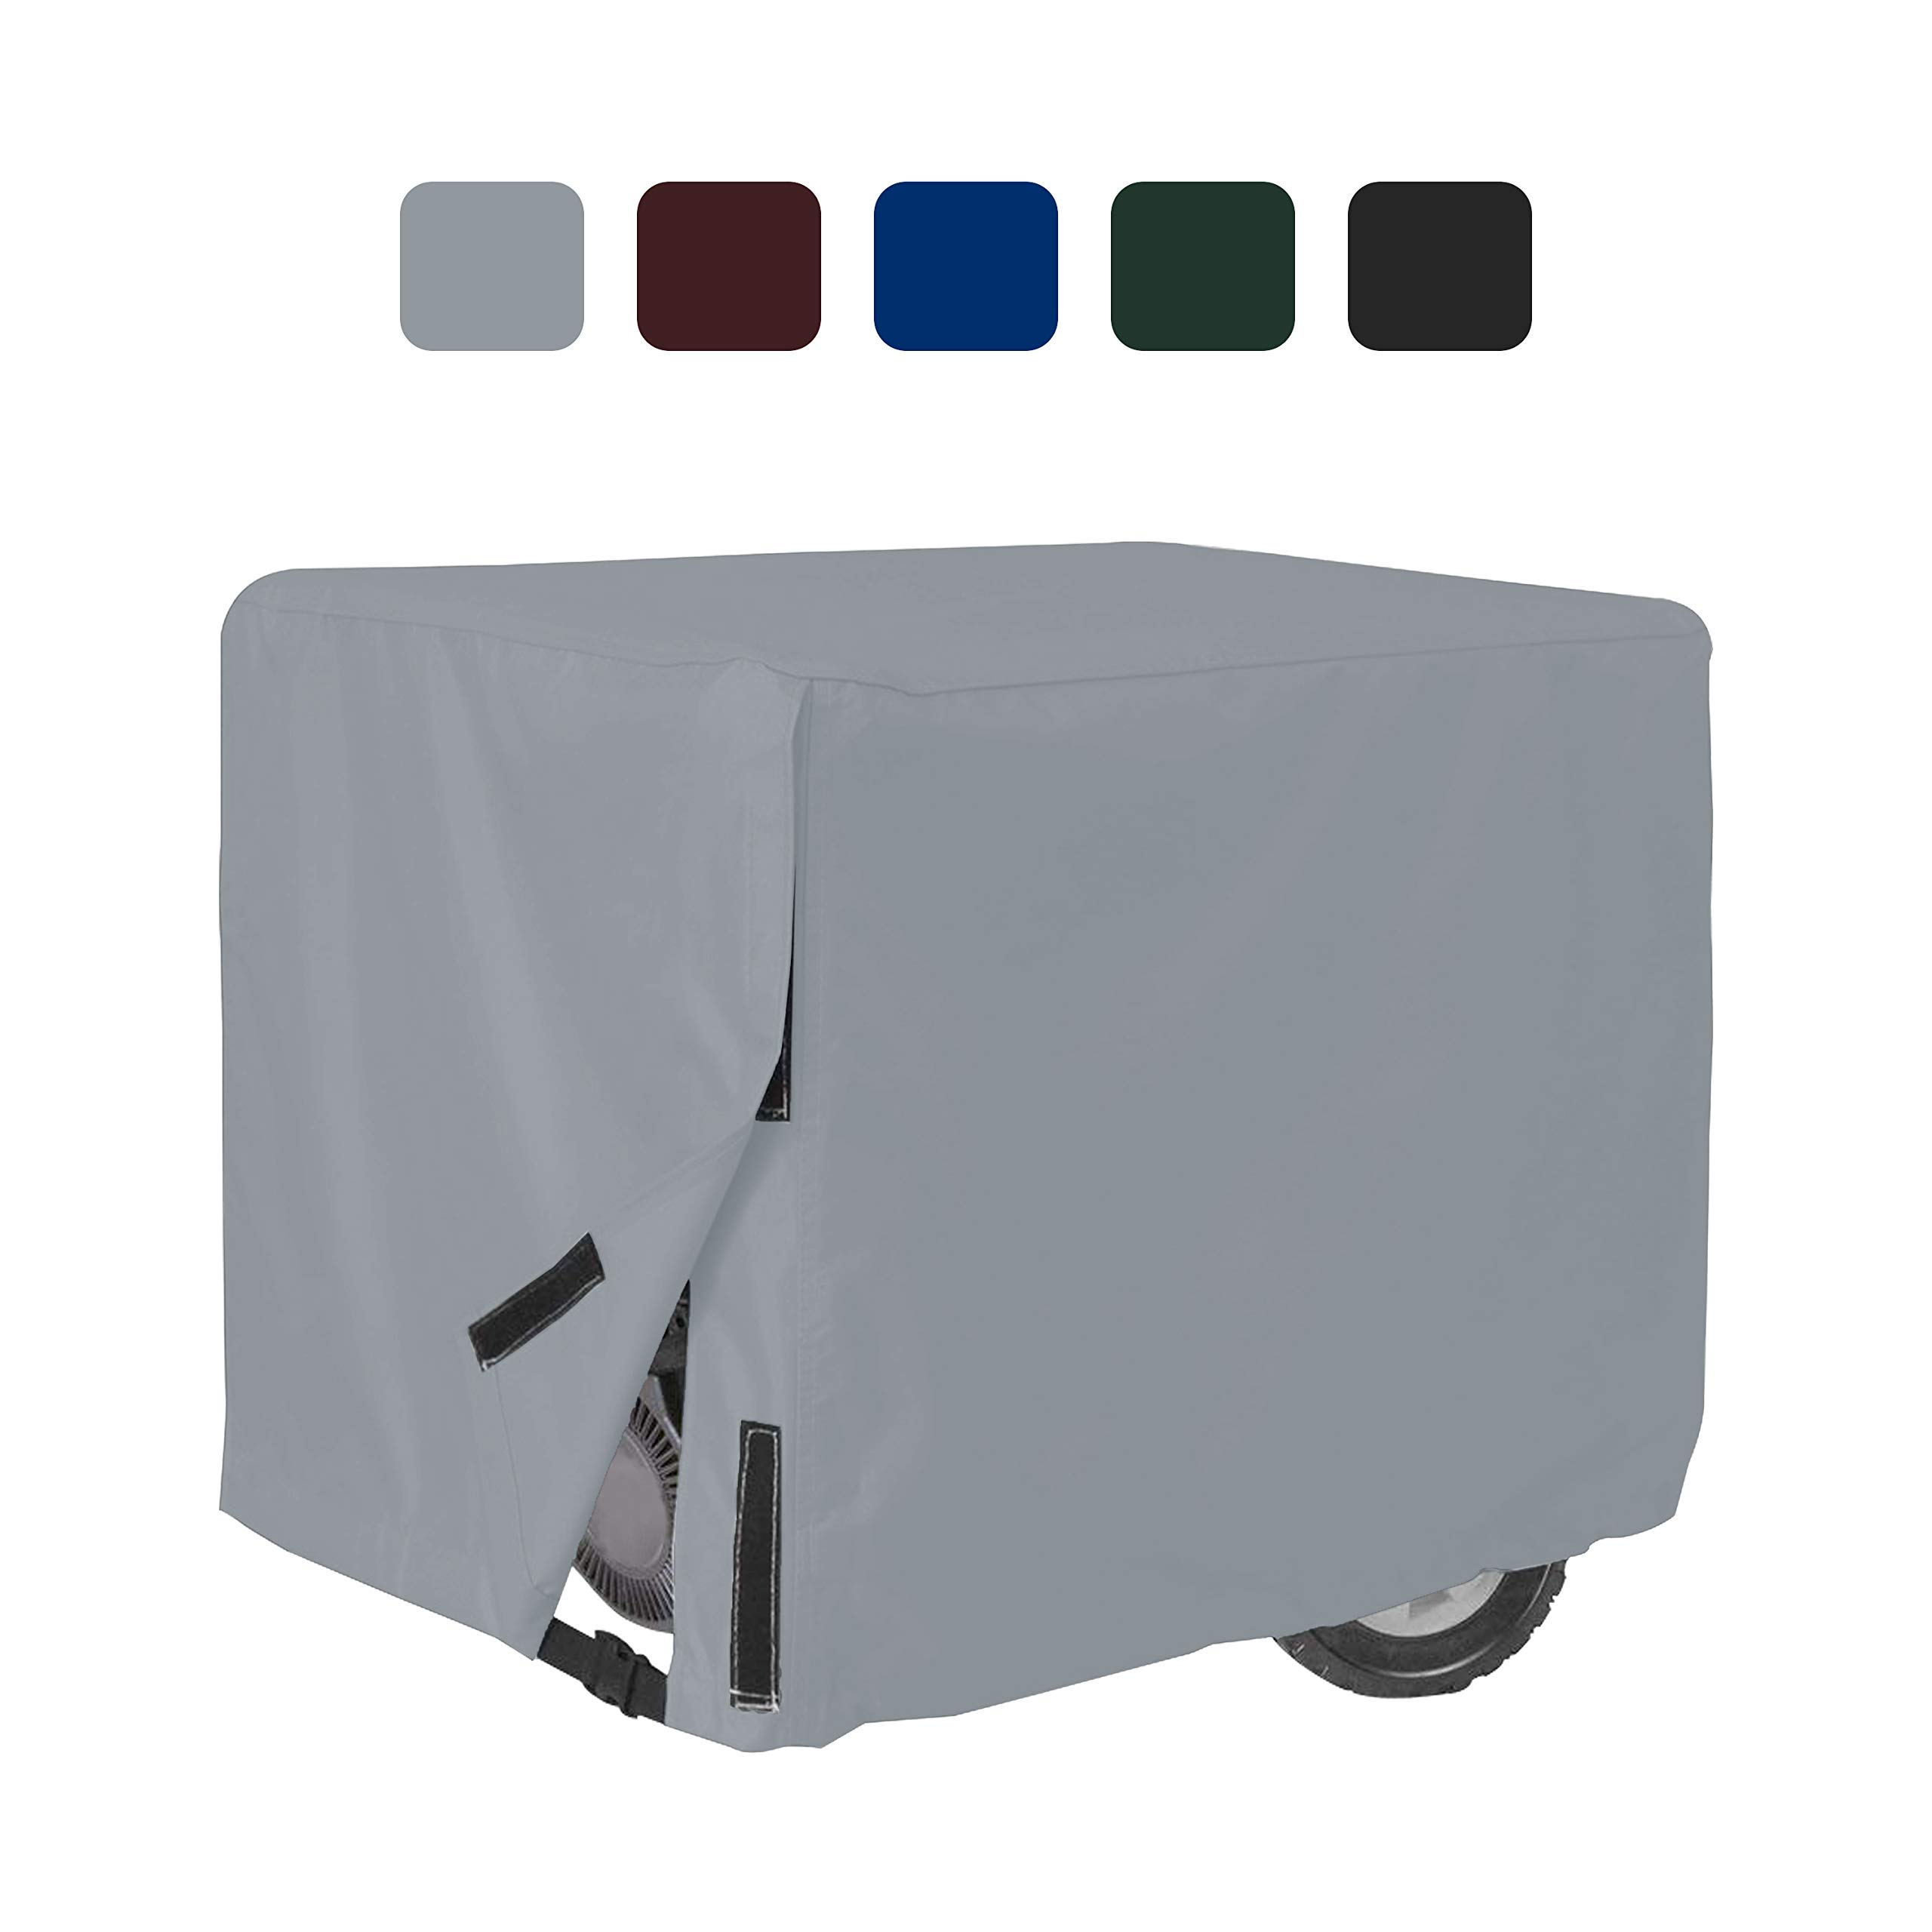 Outdoor Generator Covers 18 Oz Waterproof - 100% UV & Weather Resistant PVC Coated Generator Cover with Air Pockets and Drawstring for Sungfit (38'' X 28'' X 30'', Grey)